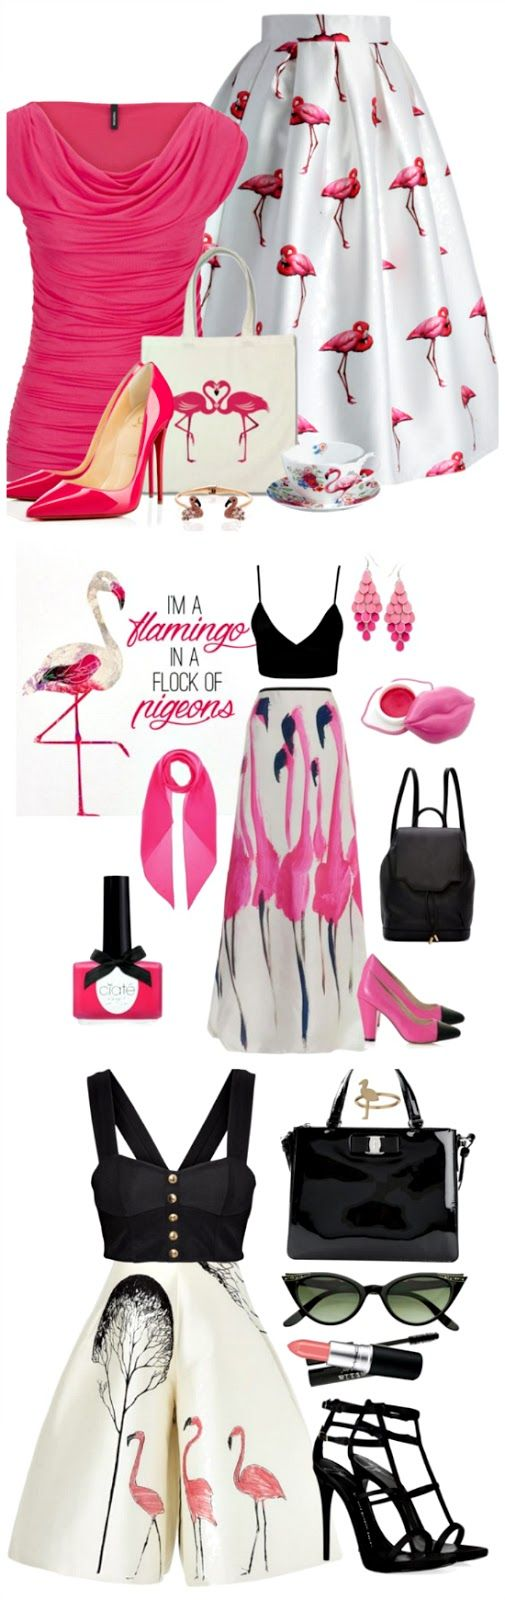 Hot pink flamingo fashion. Flamingo shoes, skirts, and more. -->Click through for sources